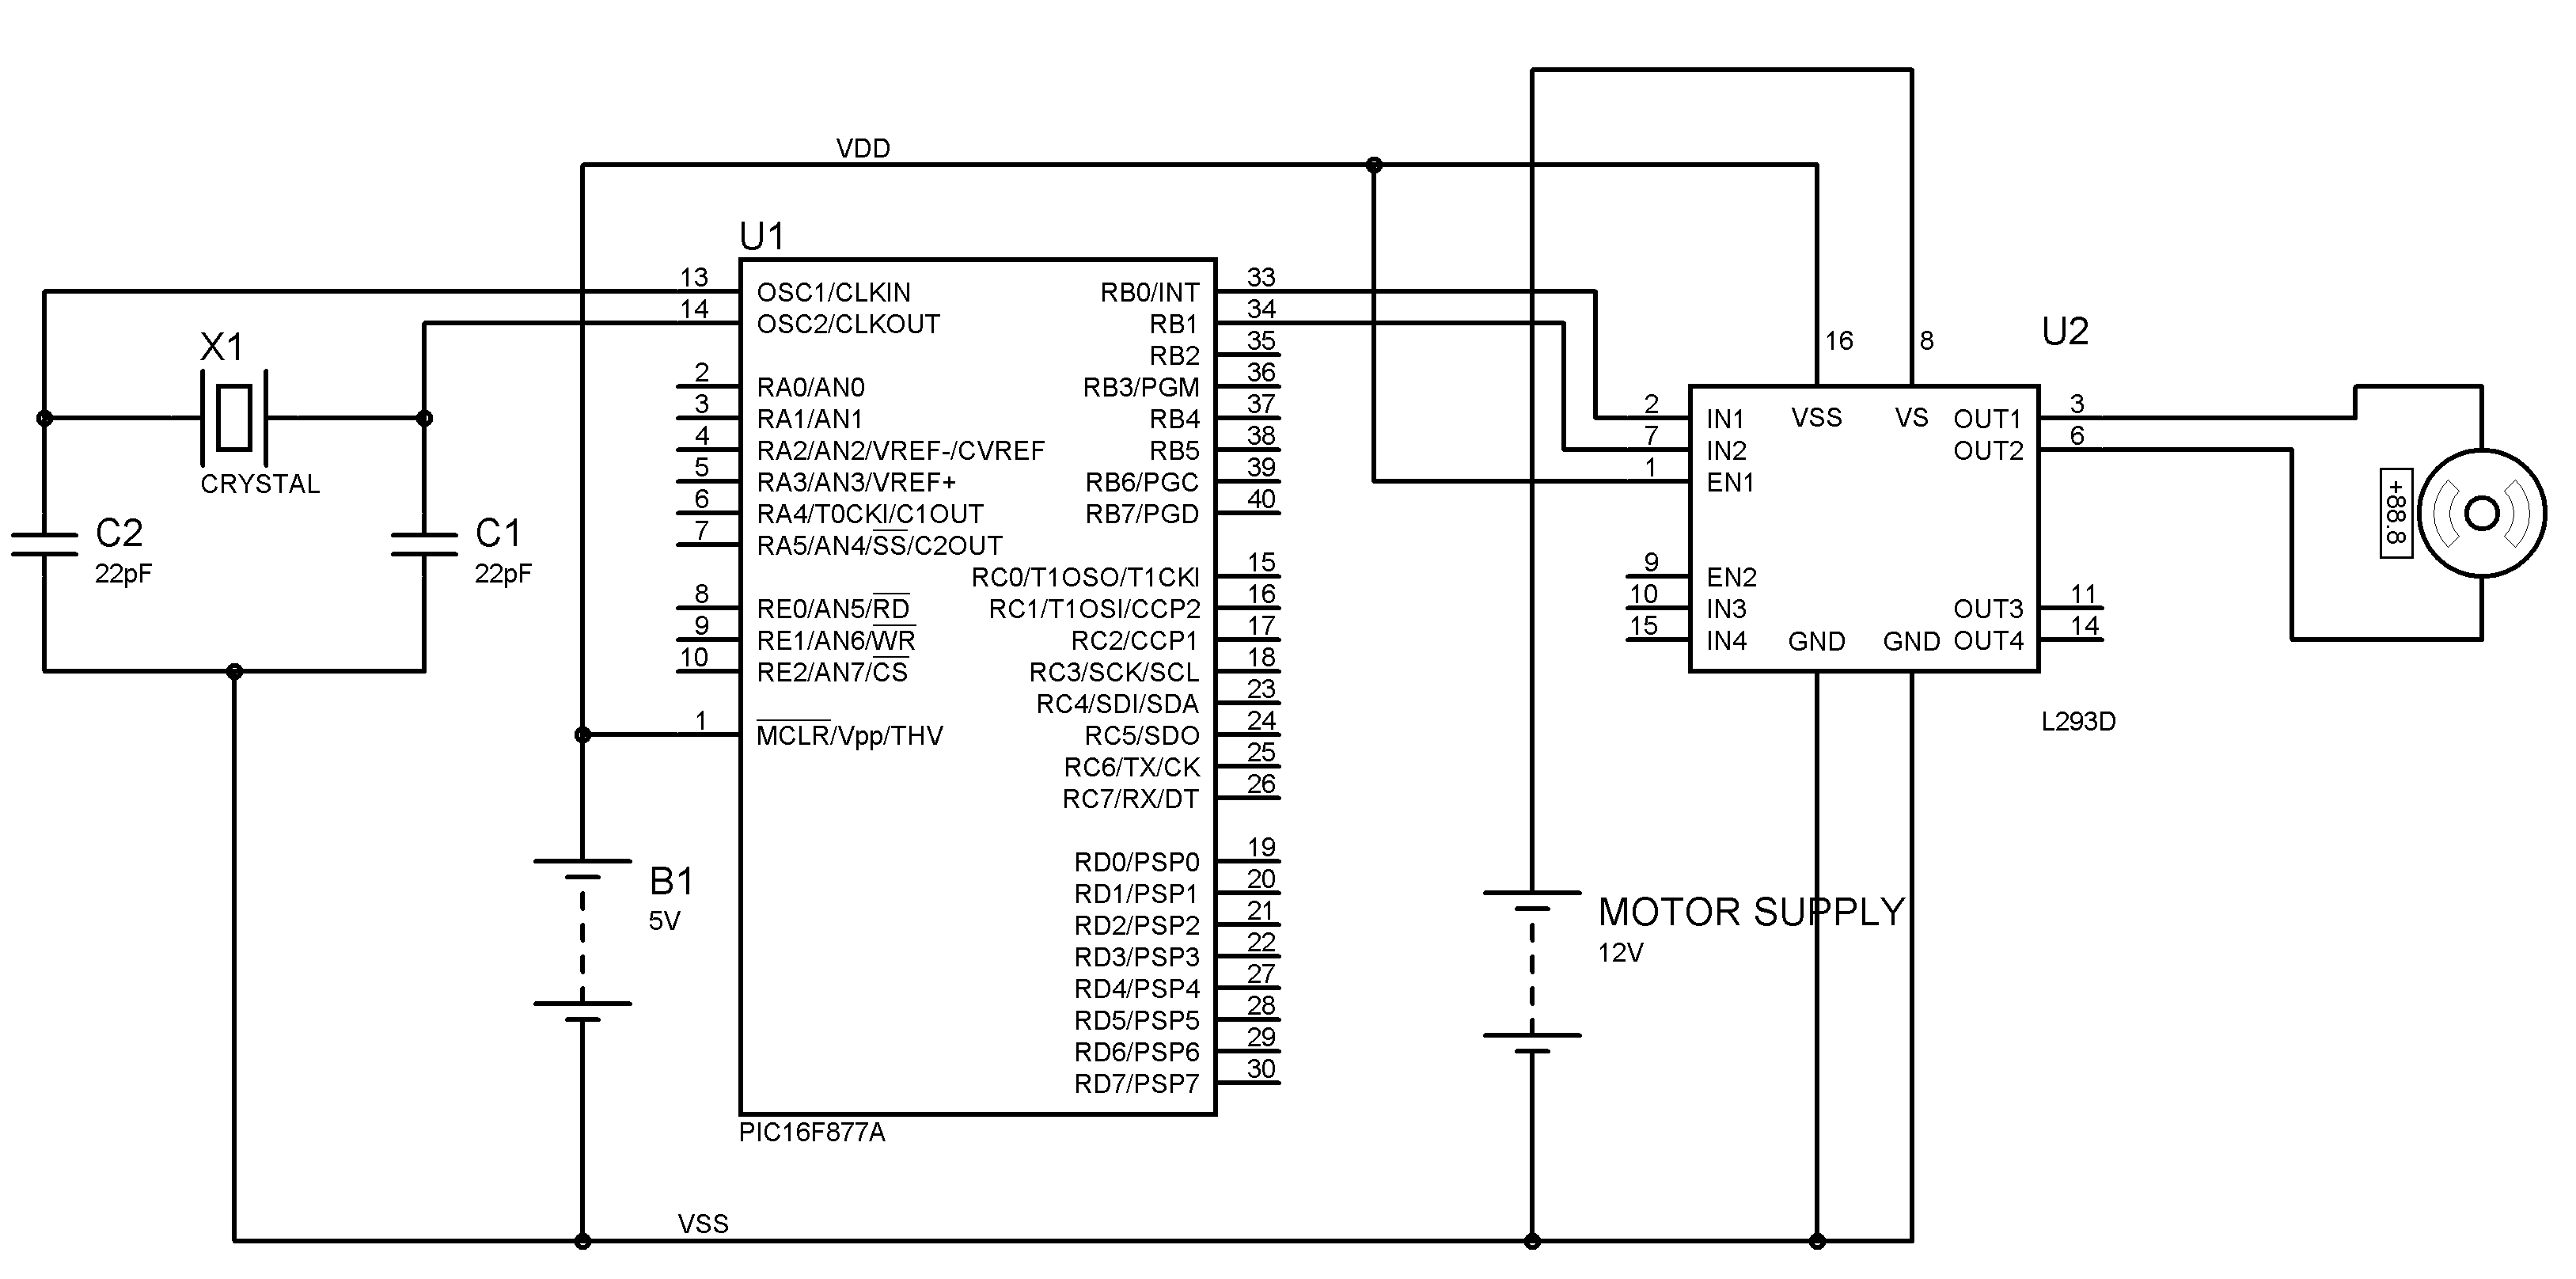 Interfacing Dc Motor With Pic Microcontroller Using L293d Mikroc Troubleshooting Electric Control Circuits Wiring Simulation And Circuit Diagram